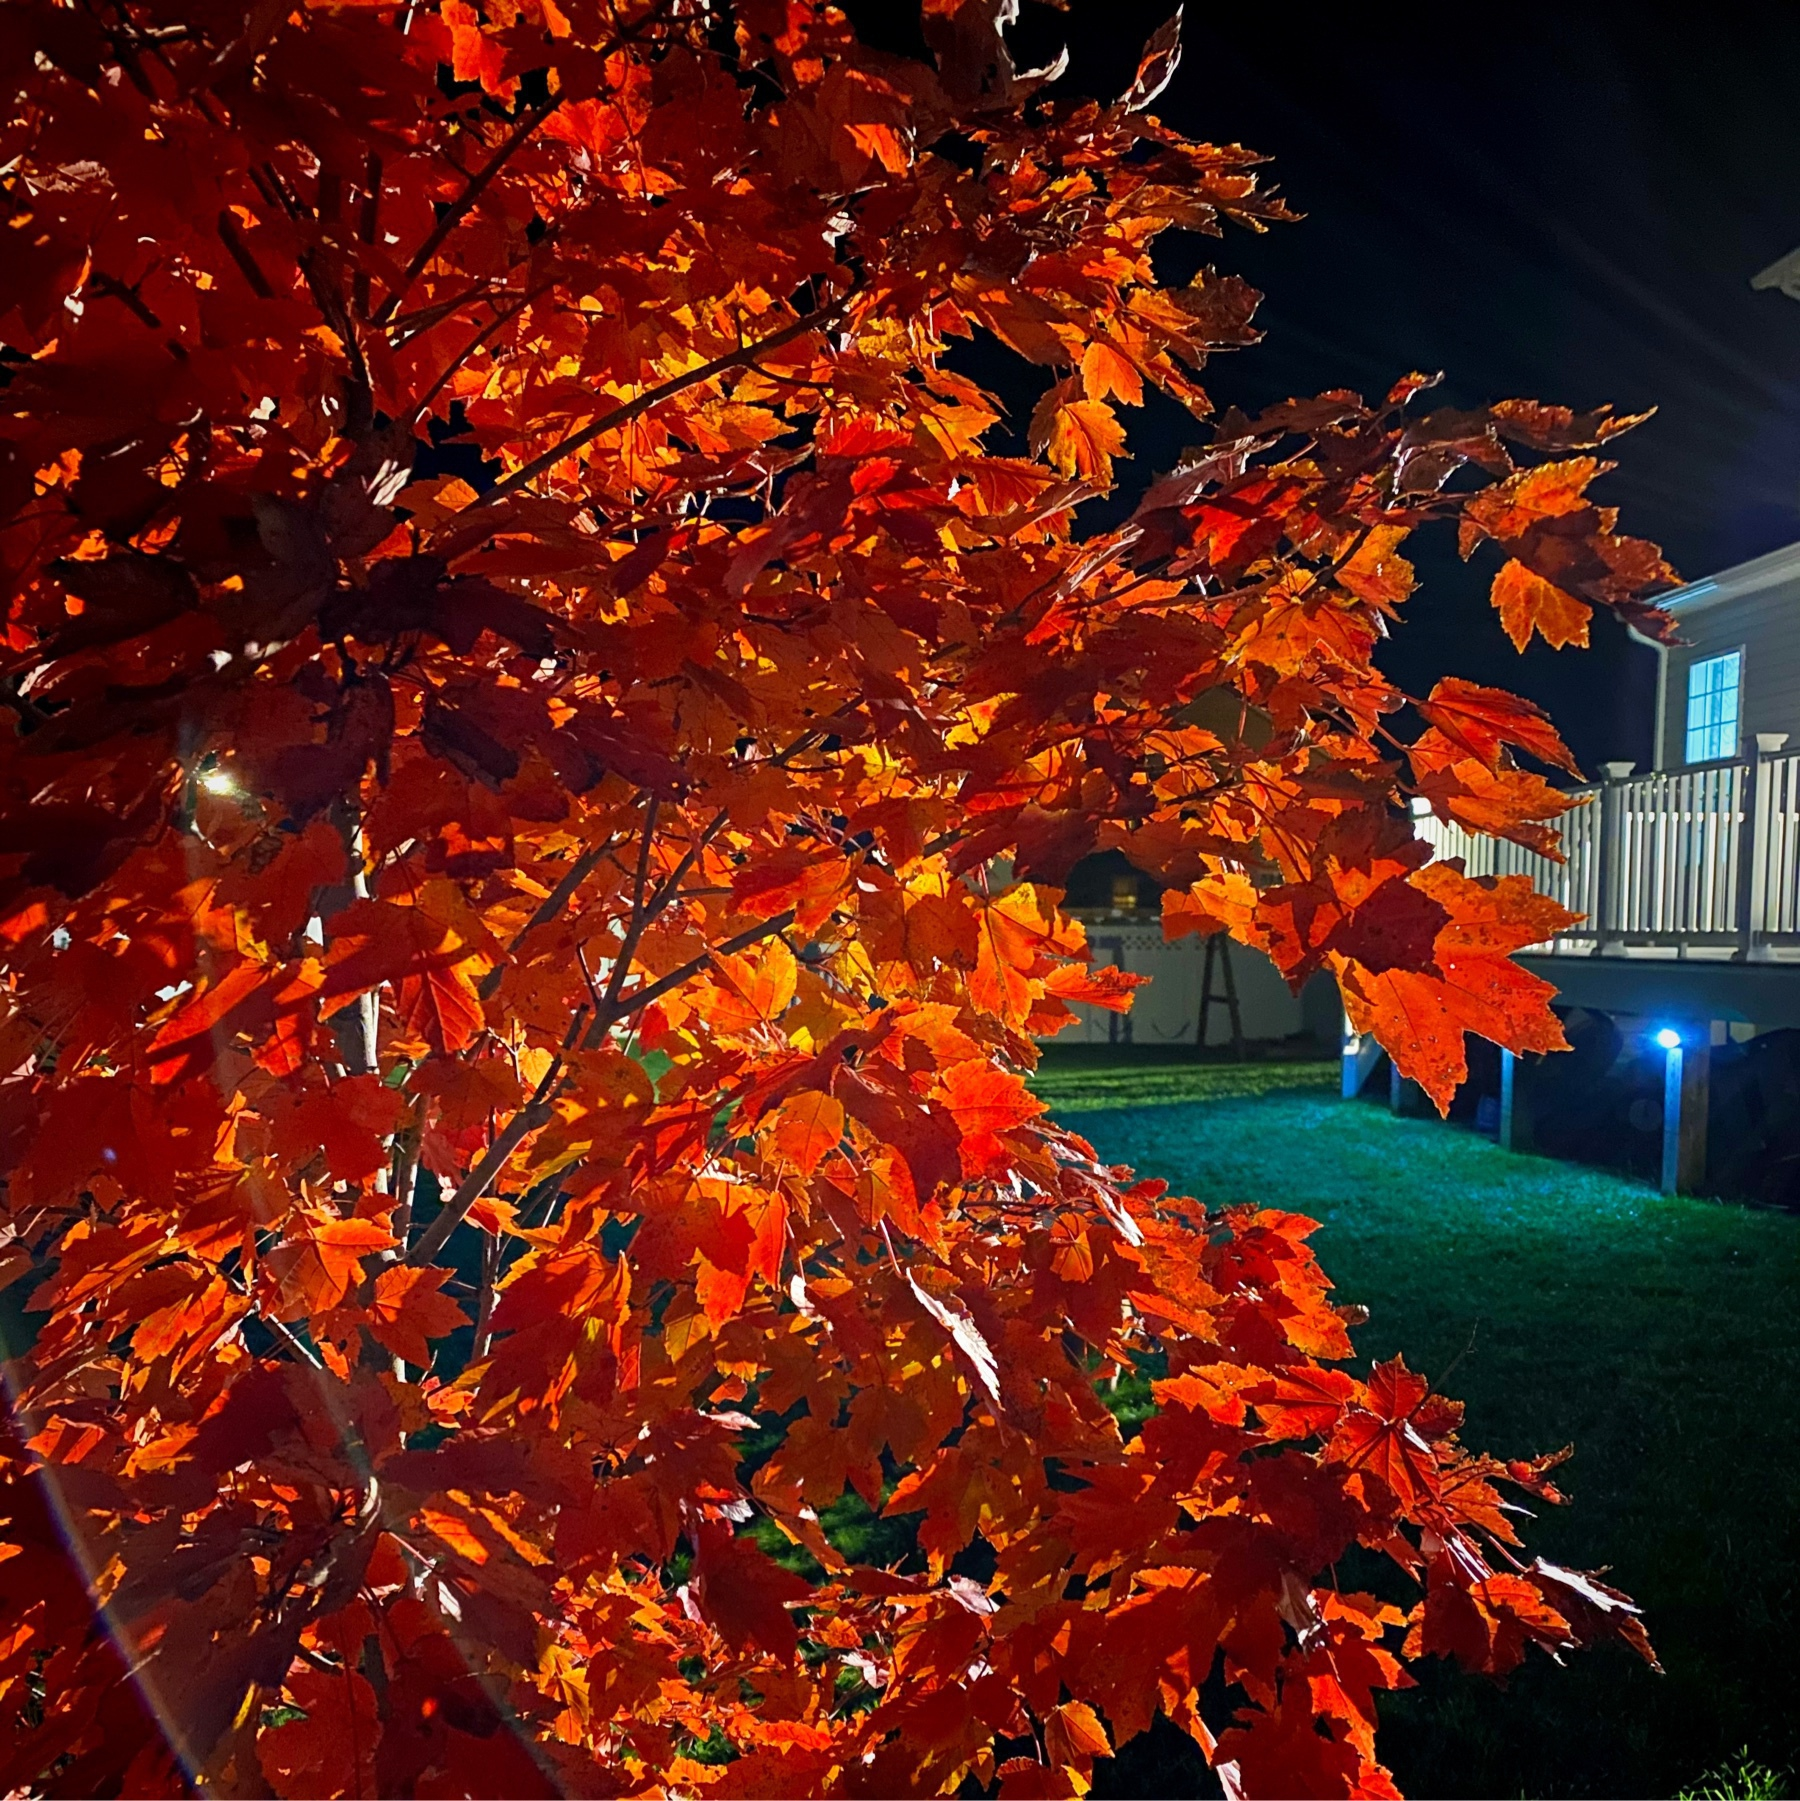 red leaves in darkness